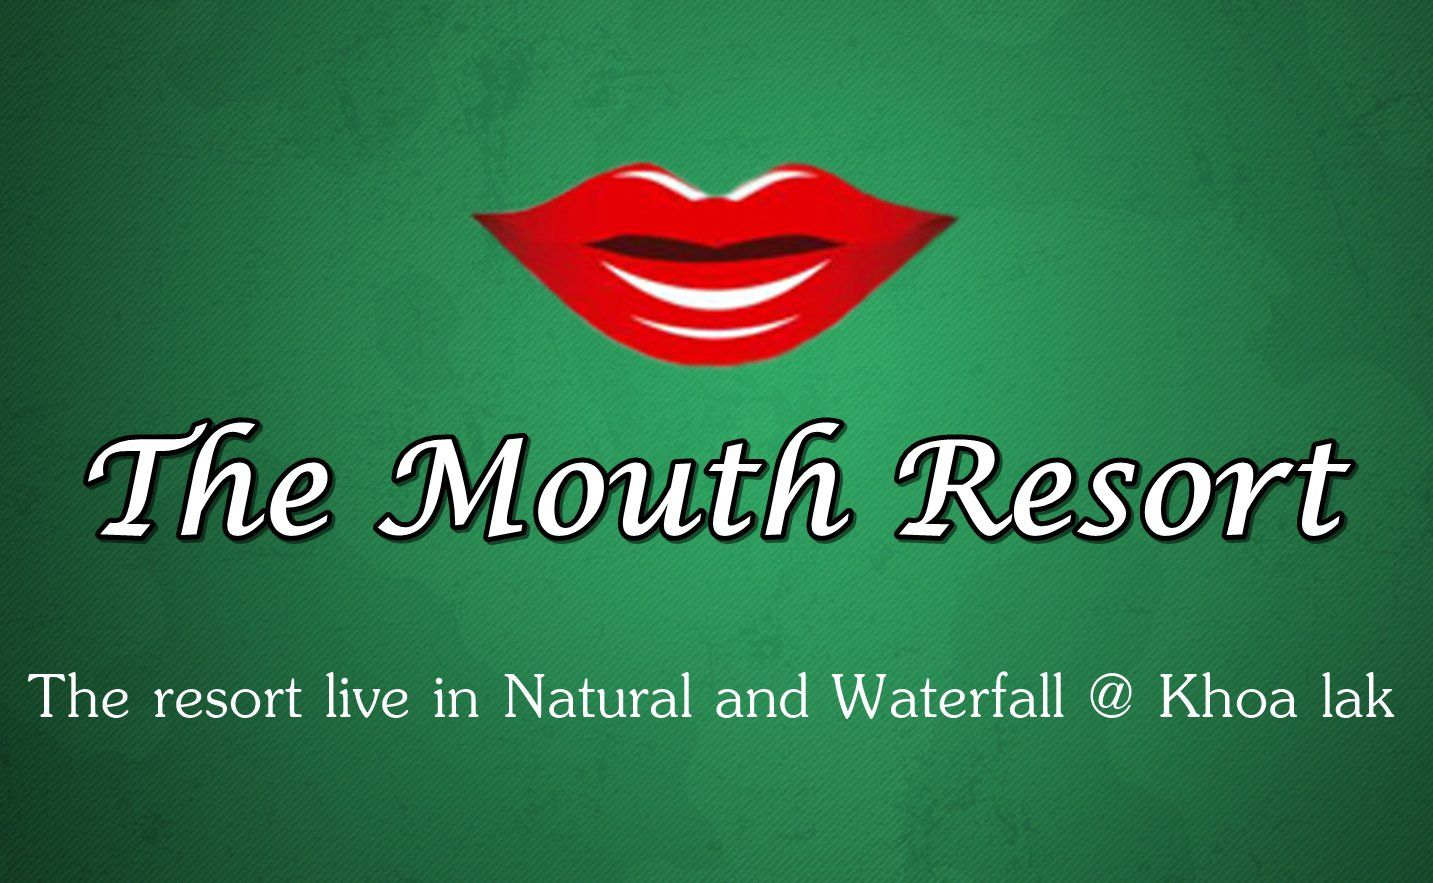 The Mouth Resort